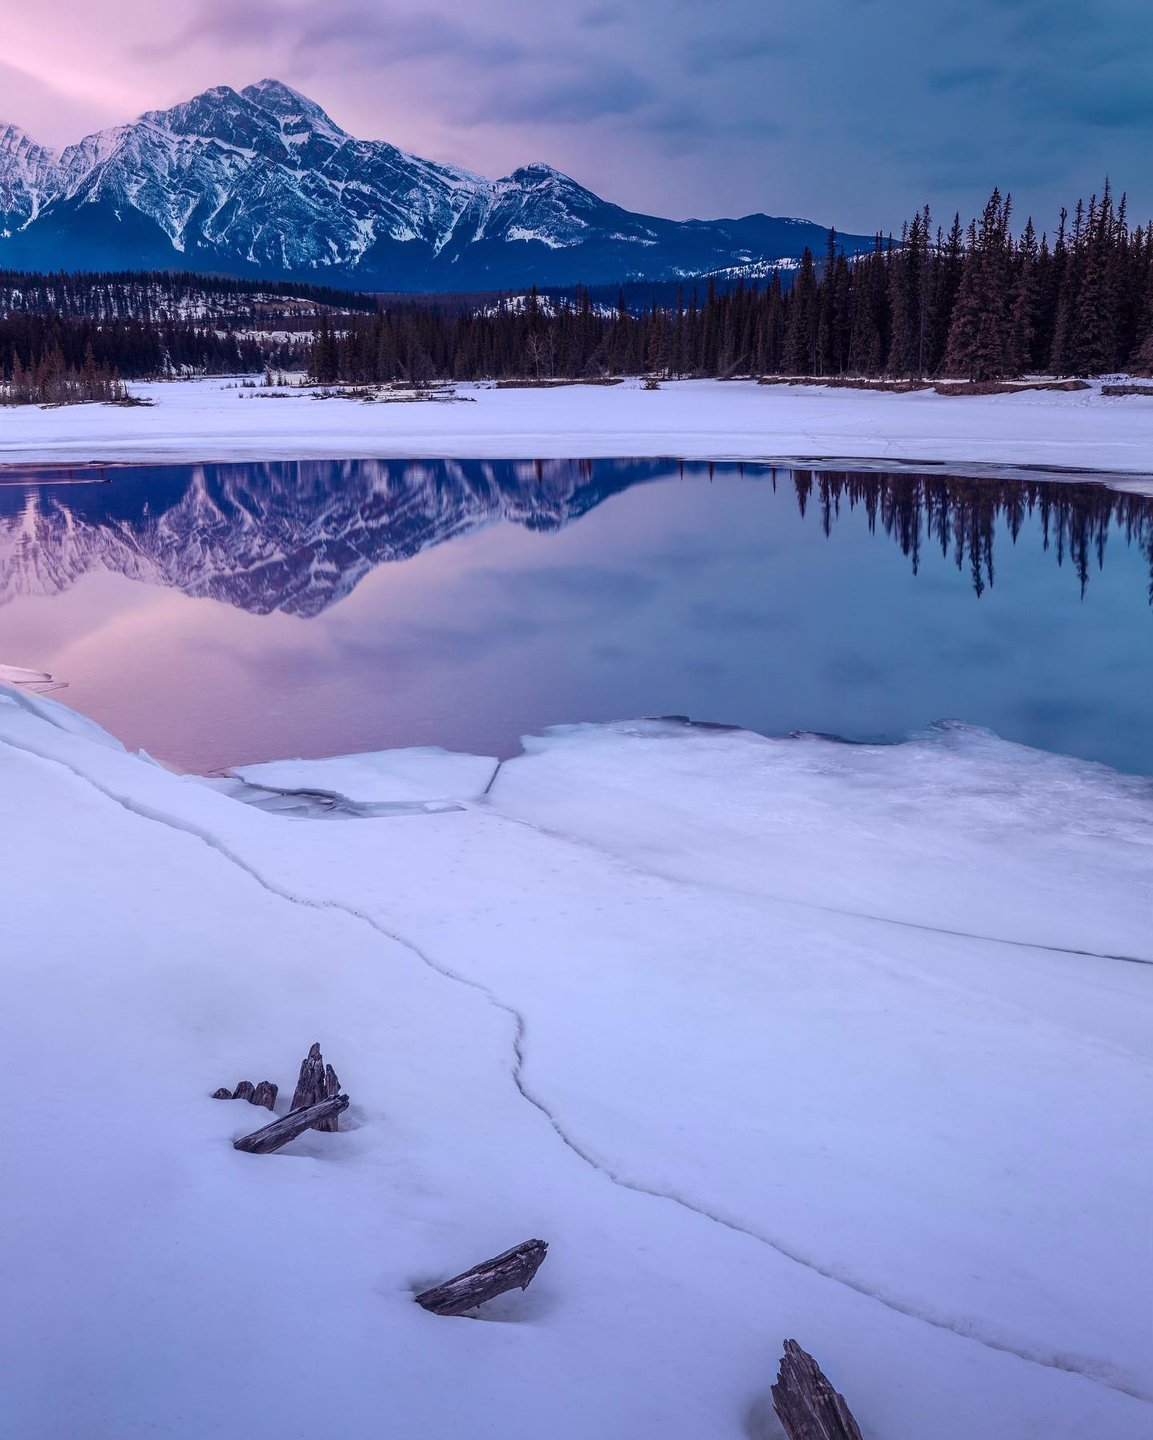 """Photo by user jasonmarinophotography, caption reads """"Separation Anxiety"""" – Ice cracking and separating along the shore of the Athabasca River in Jasper National Park, Alberta. Swipe for the much better full crop version.  For prints and other products, visit my website – link in bio."""